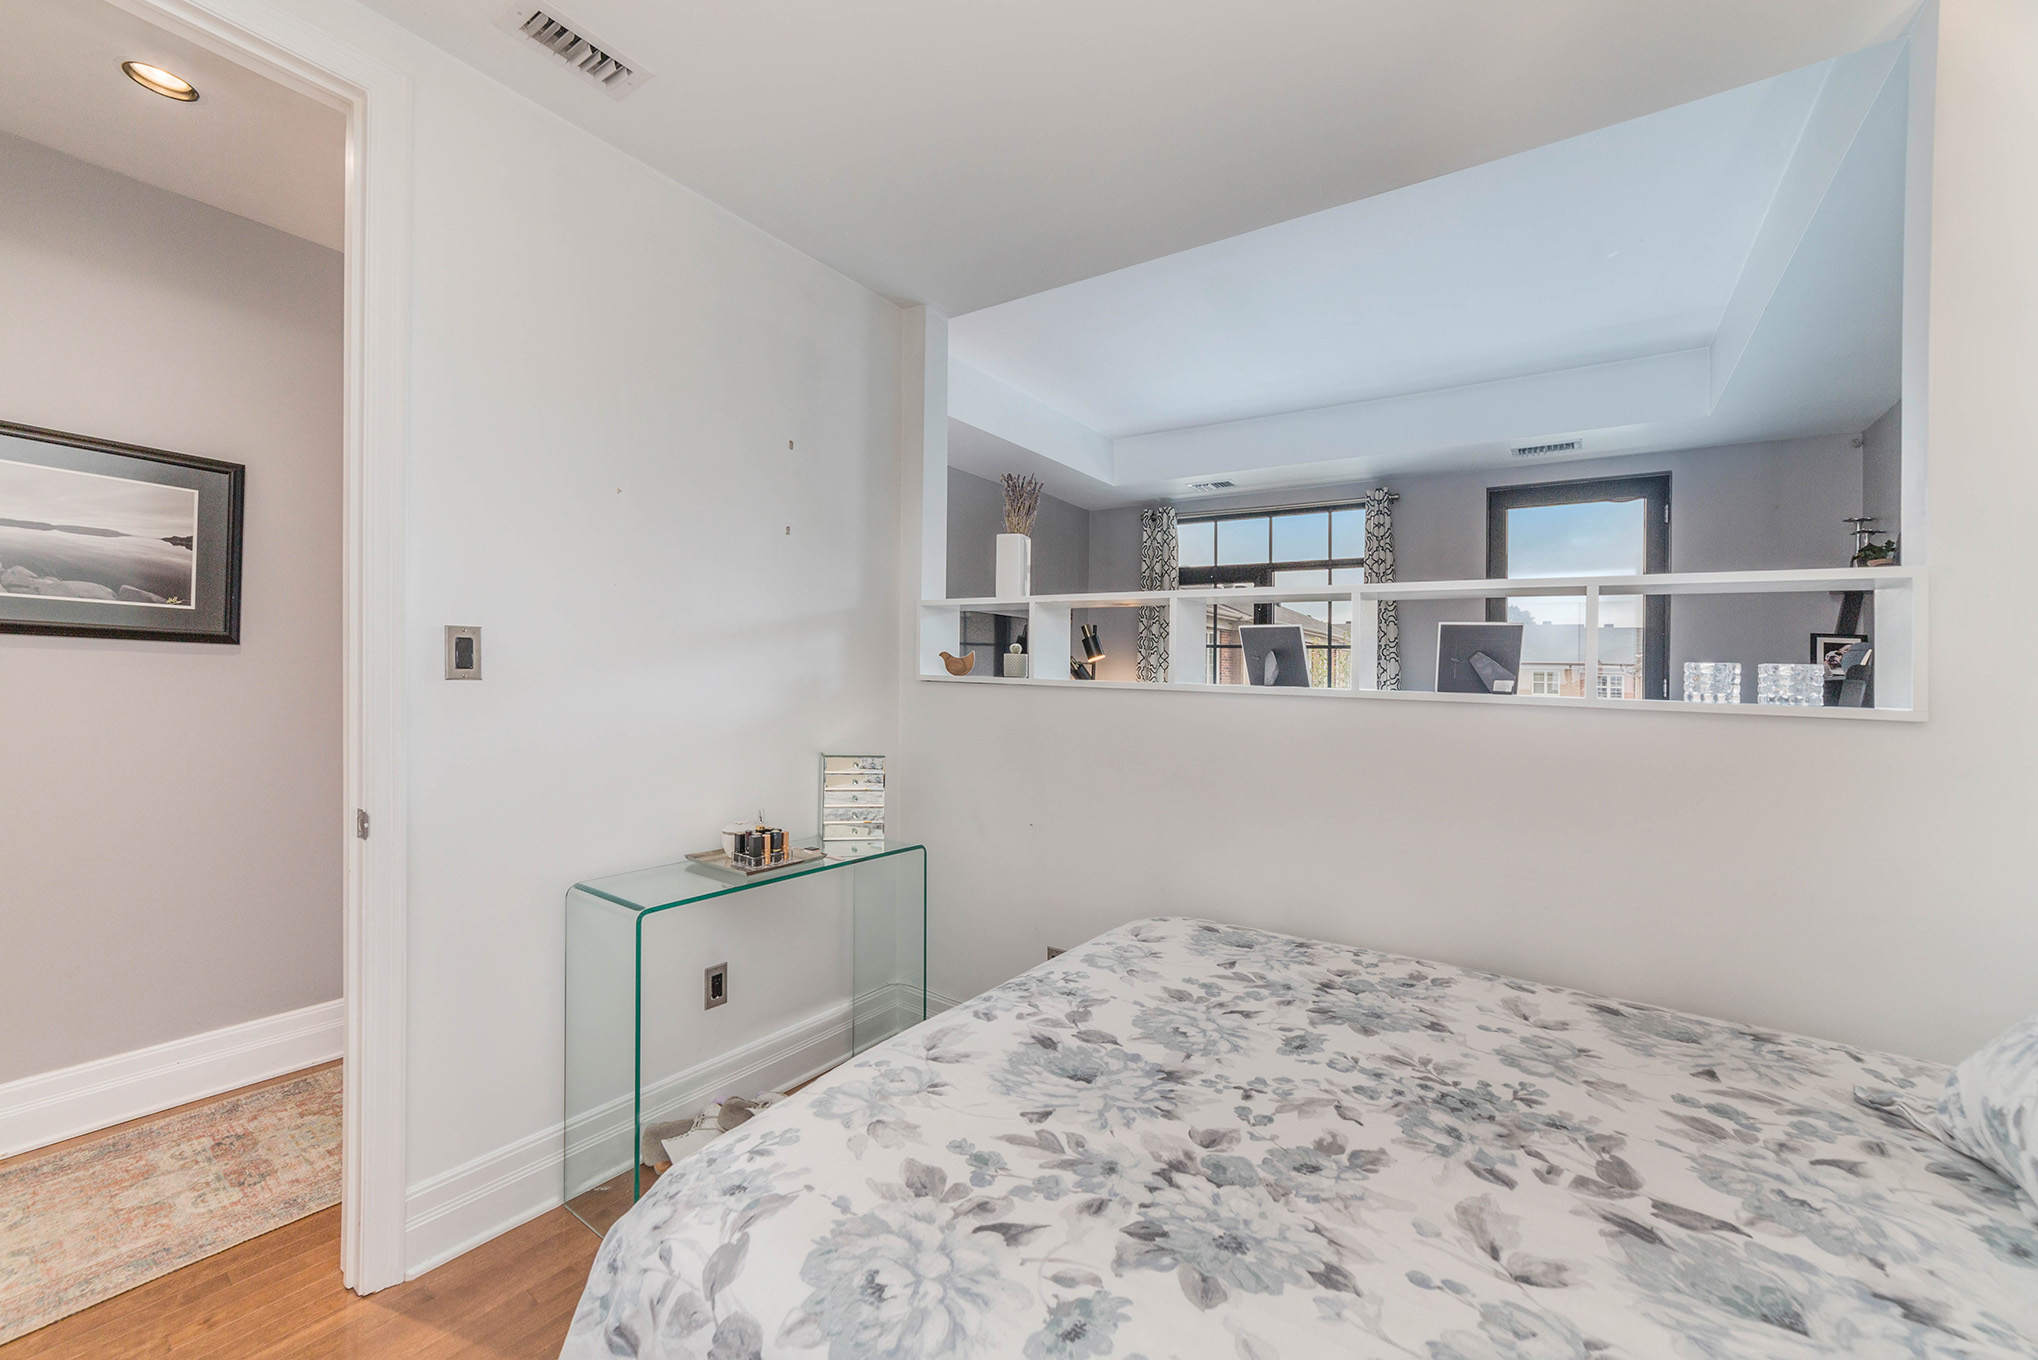 Good sized bedroom.  Bright and airy with ample closet space.  Opens up into the living area.